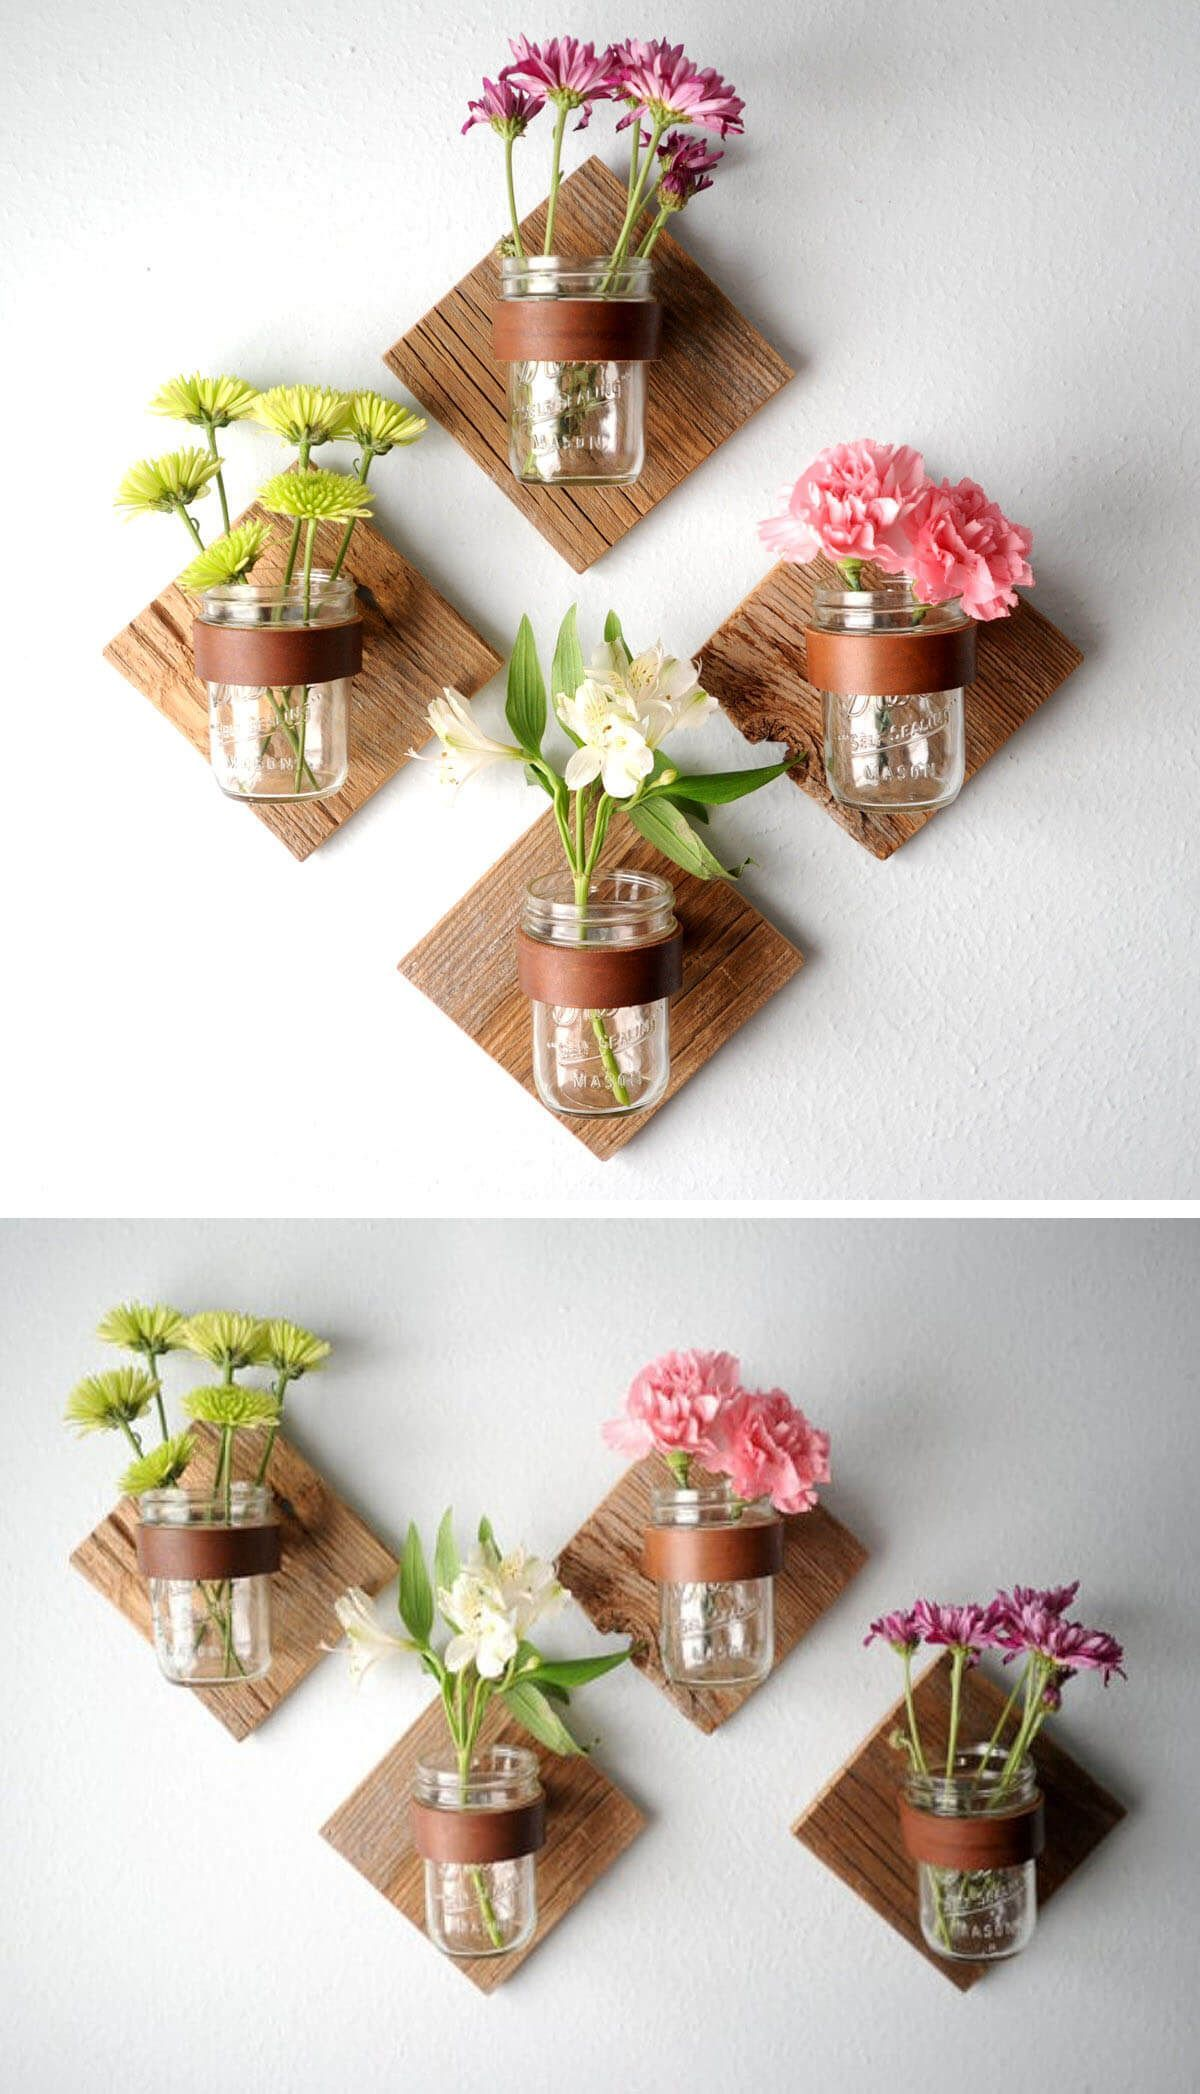 15 Cheap And Easy Mason Jar Decor Project Ideas - Craftsonfire -  If there's one item that can be successfully turned into something that looks gorgeous, it's ma - #apartmentdecor #bedroomdecor #Cheap #Craftsonfire #Decor #Easy #Ideas #Jar #Mason #Project